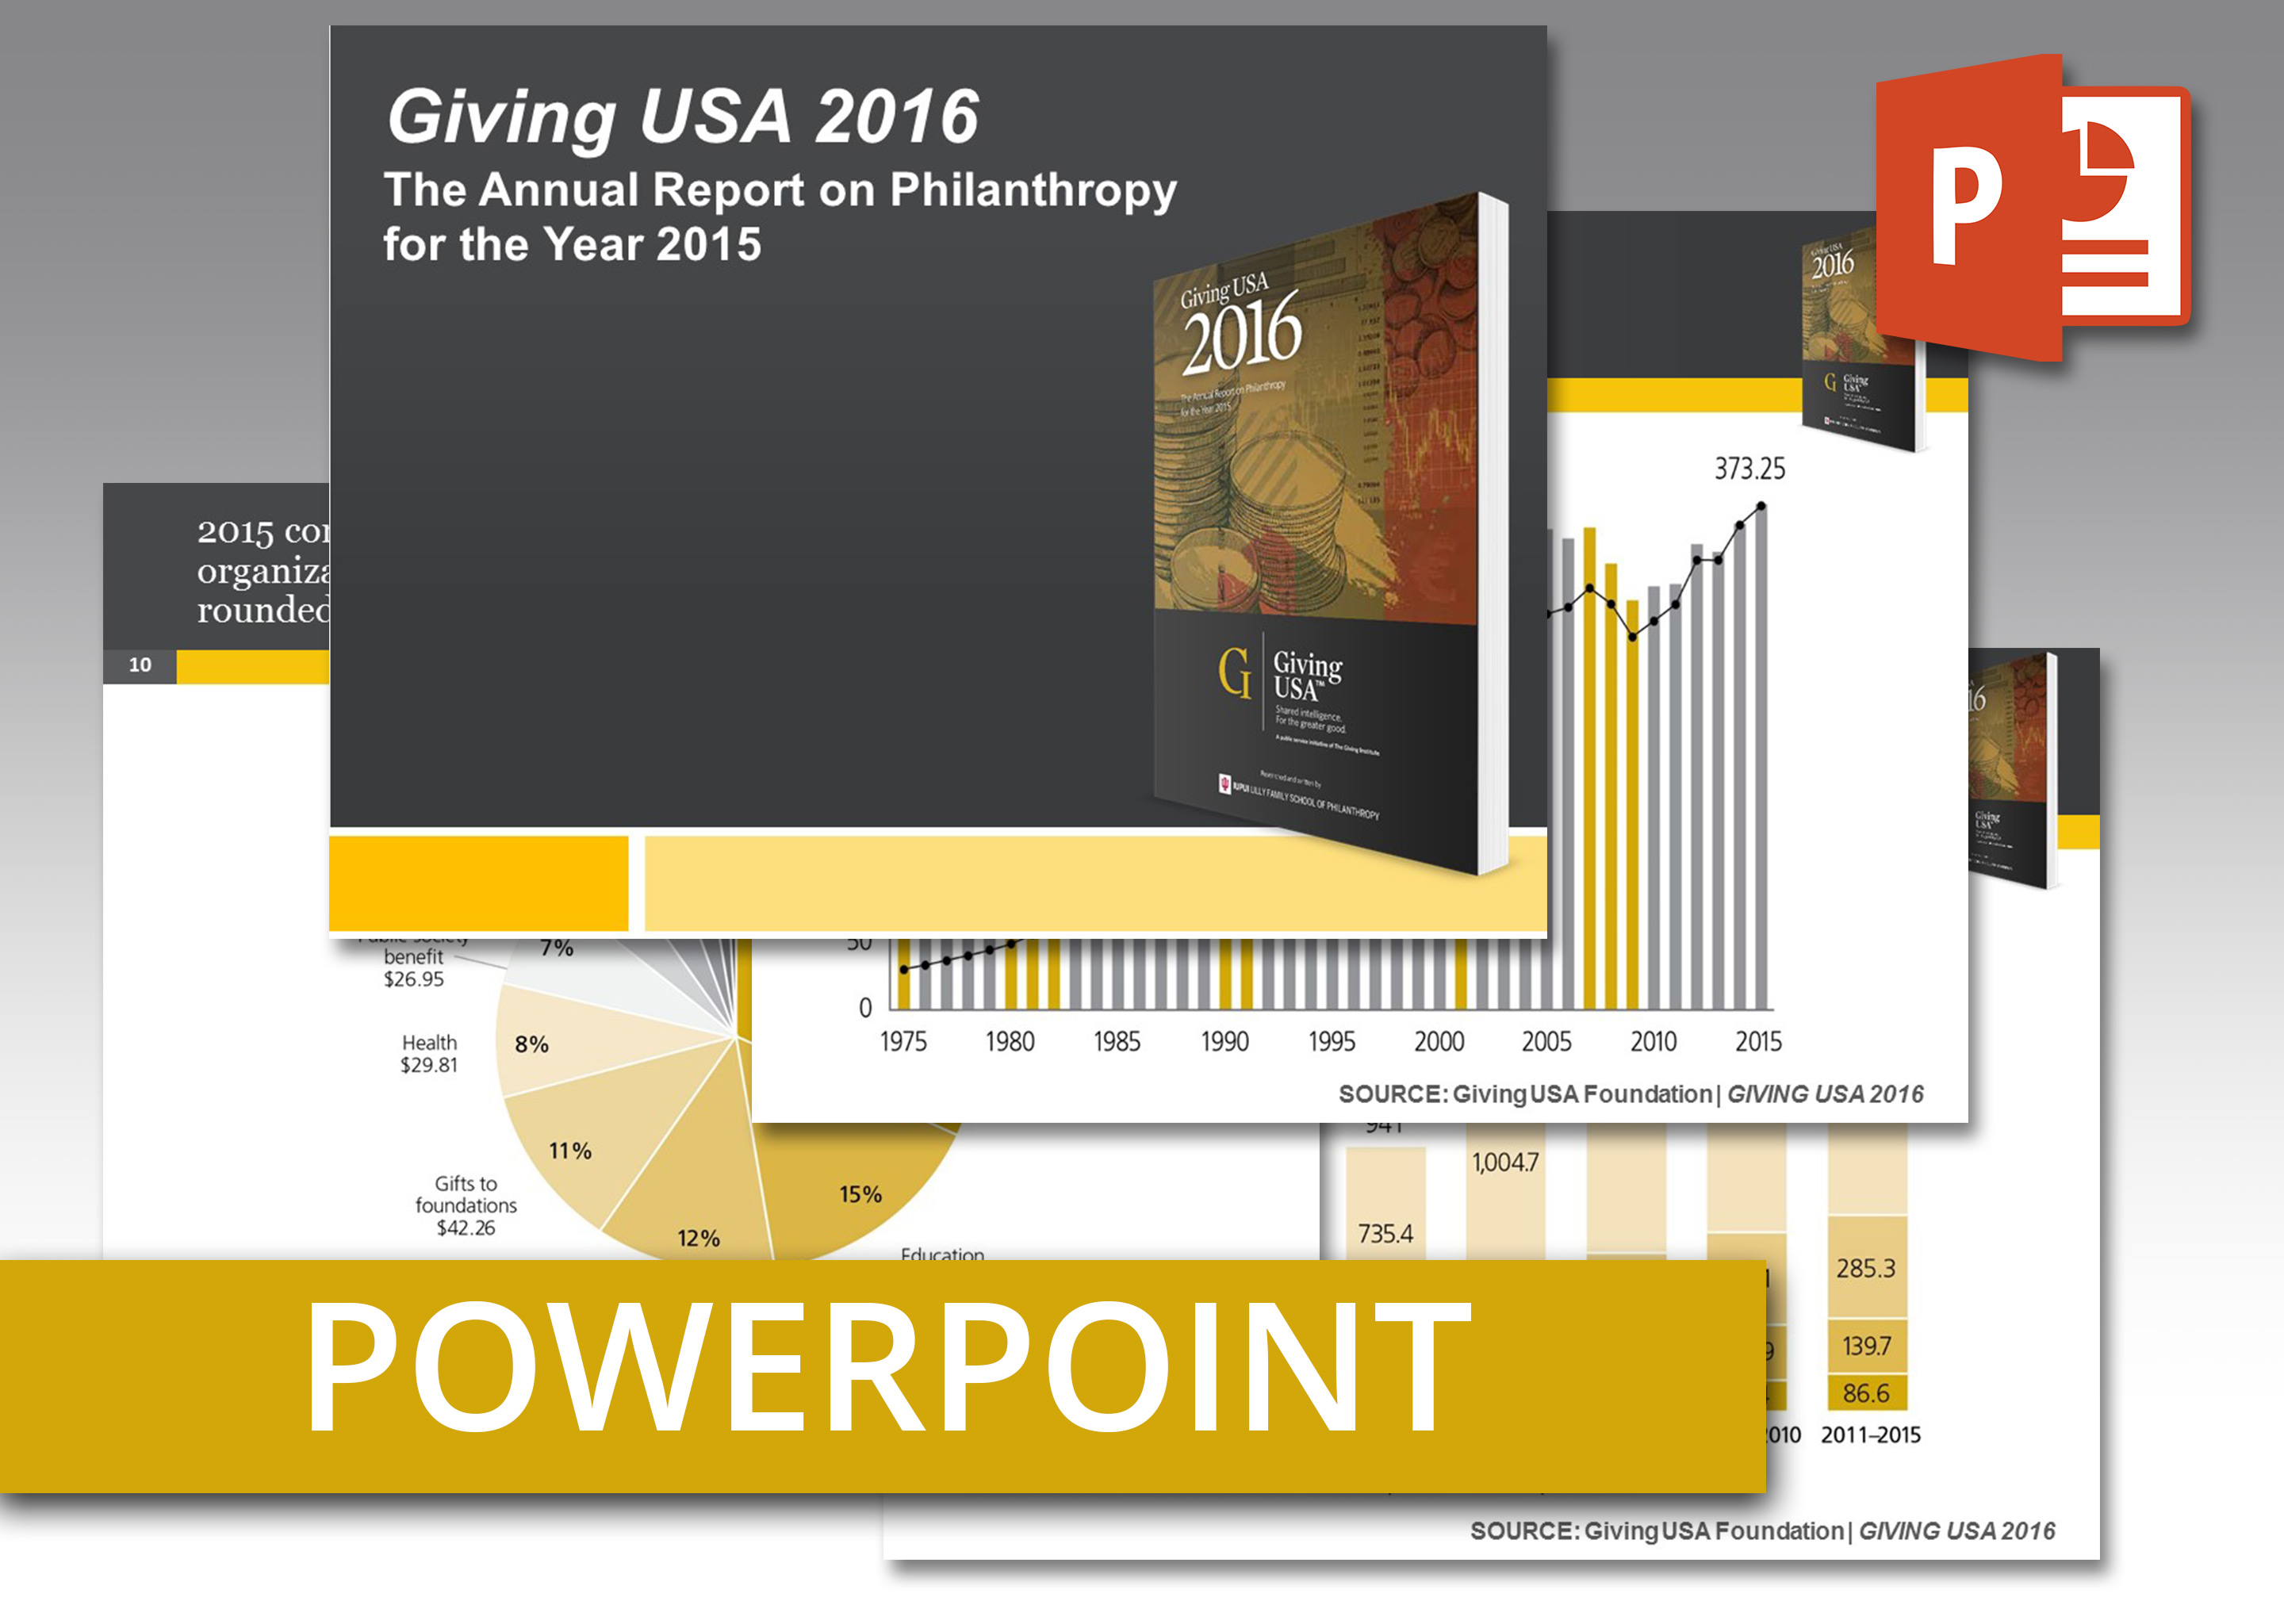 Usdgus  Remarkable Giving Usa  Powerpoint An Easytouse Presentation Of Report  With Outstanding Giving Usa  Powerpoint An Easytouse Presentation Of Report Findings Including Talking Points With Breathtaking Powerpoint Design Ideas Also  Colonies Powerpoint In Addition Powerpoint Diagrams And Powerpoint Font Size As Well As Powerpoint World Map Additionally Black History Month Powerpoint From Givingusaorg With Usdgus  Outstanding Giving Usa  Powerpoint An Easytouse Presentation Of Report  With Breathtaking Giving Usa  Powerpoint An Easytouse Presentation Of Report Findings Including Talking Points And Remarkable Powerpoint Design Ideas Also  Colonies Powerpoint In Addition Powerpoint Diagrams From Givingusaorg